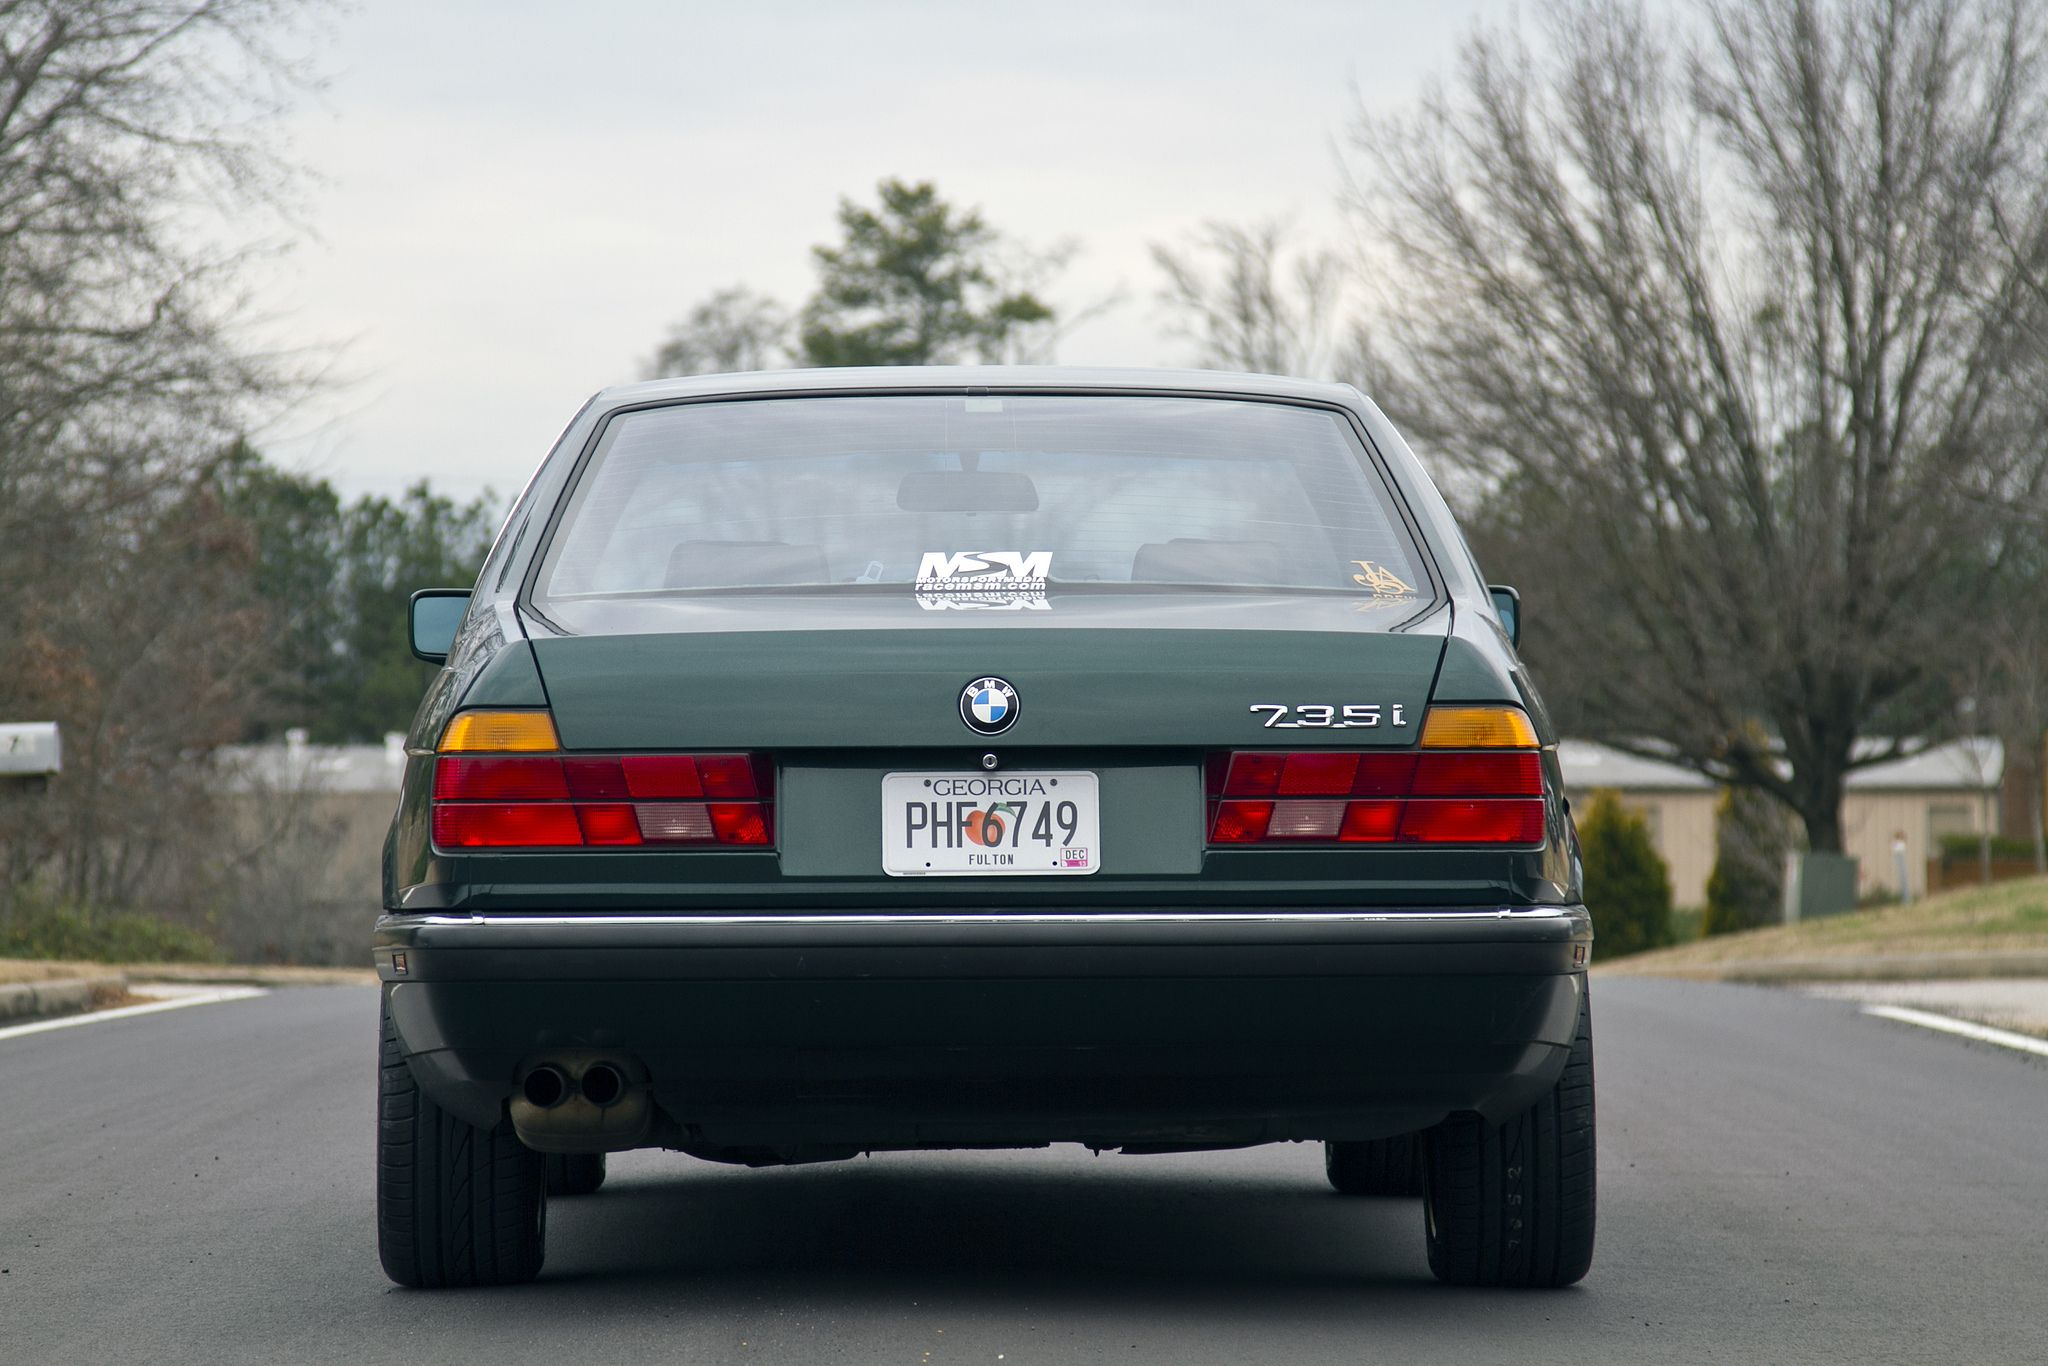 1990 bmw 735i owners manual